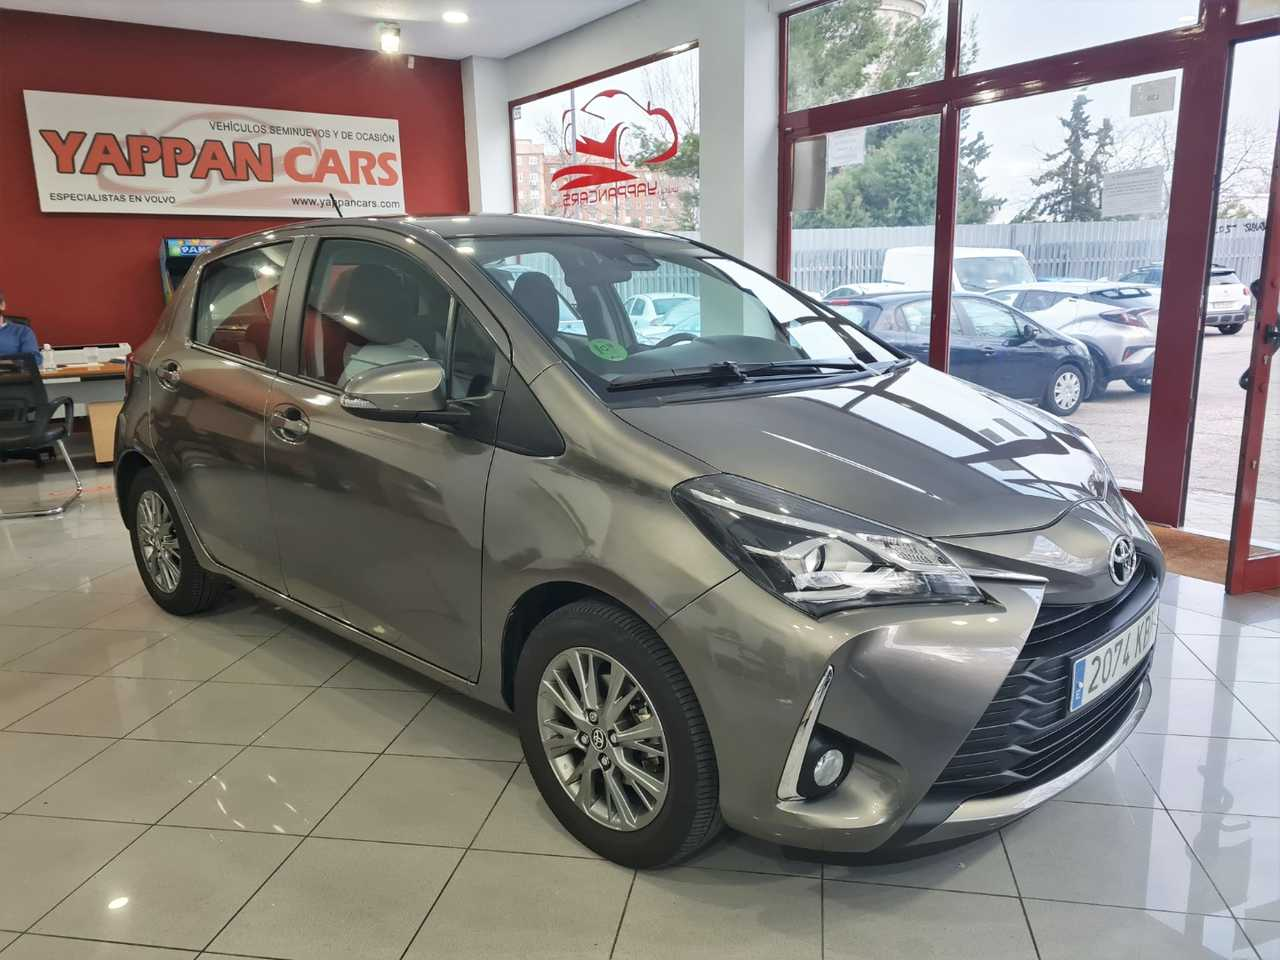 Toyota Yaris 1.0 70 Active Tech 5p.   - Foto 1